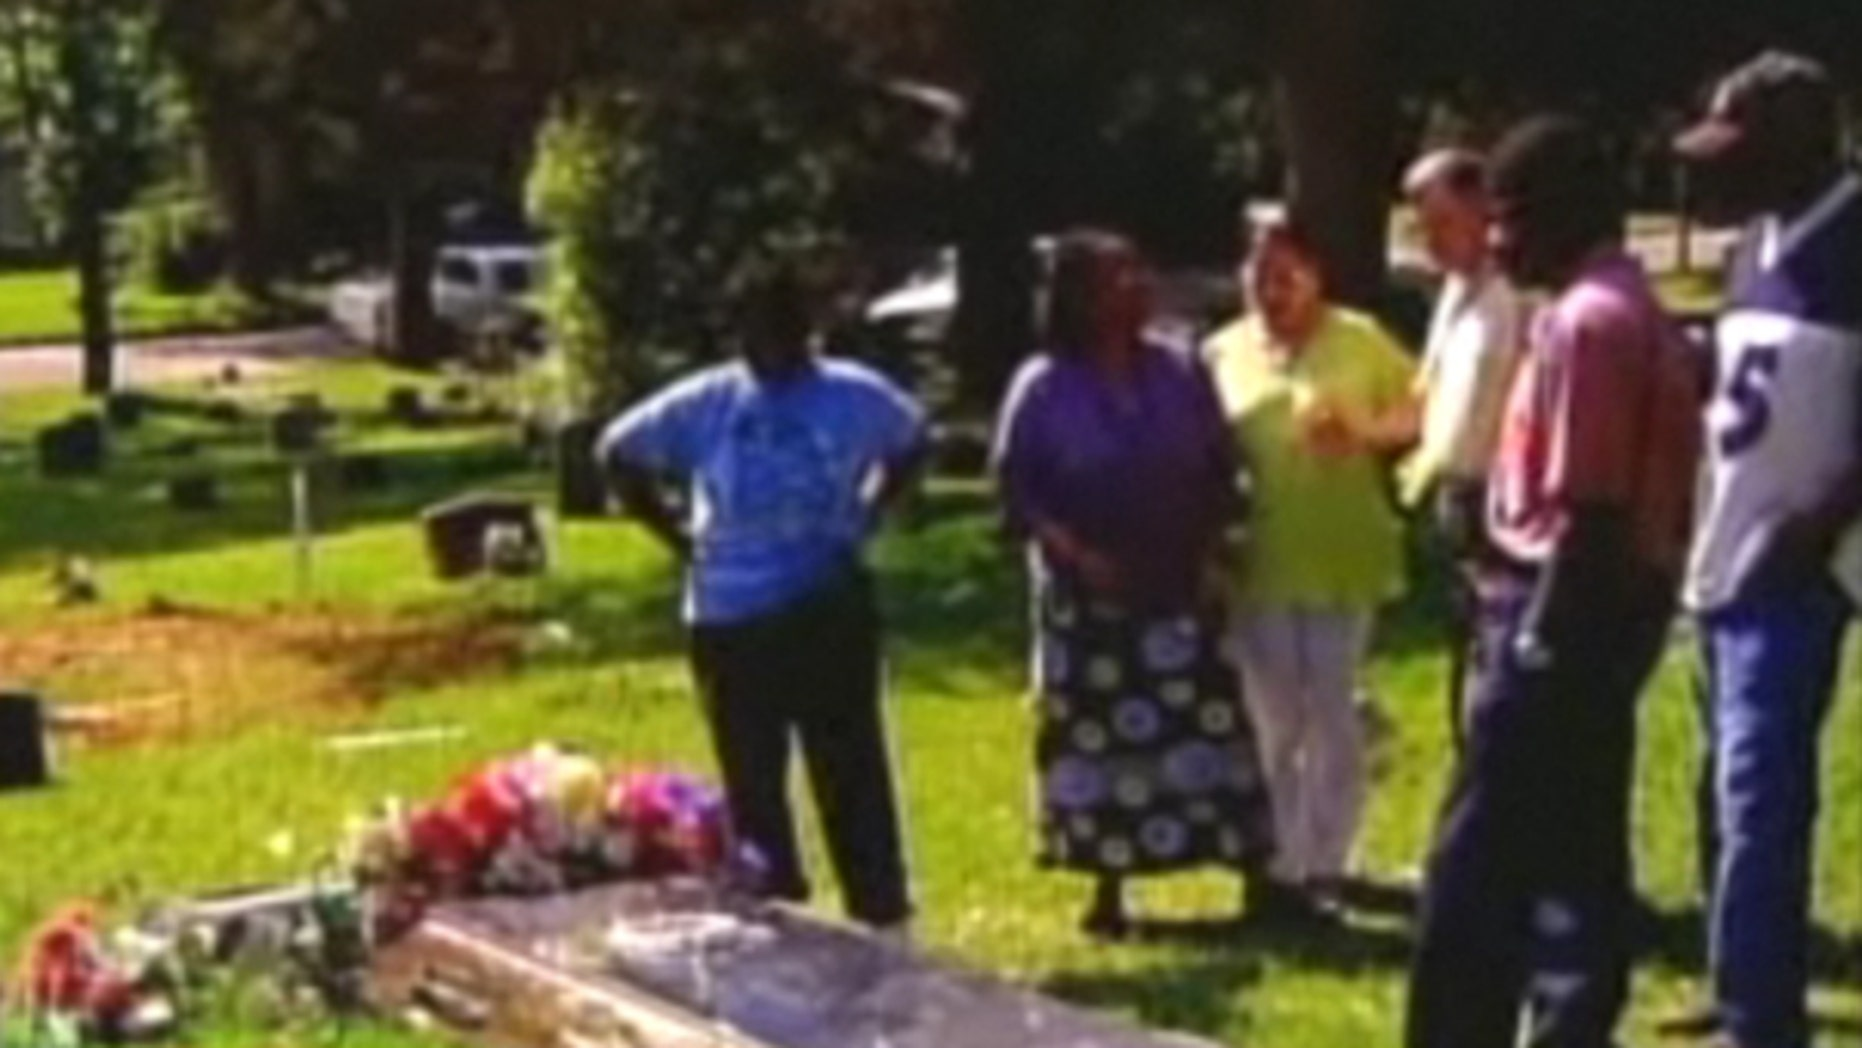 Shown here is the grave of James Byrd Jr., who was dragged to death in Jasper, Texas, by white supremacists 12 years ago. Somebody tried to sell dirt from his grave online. (MyFoxHouston)